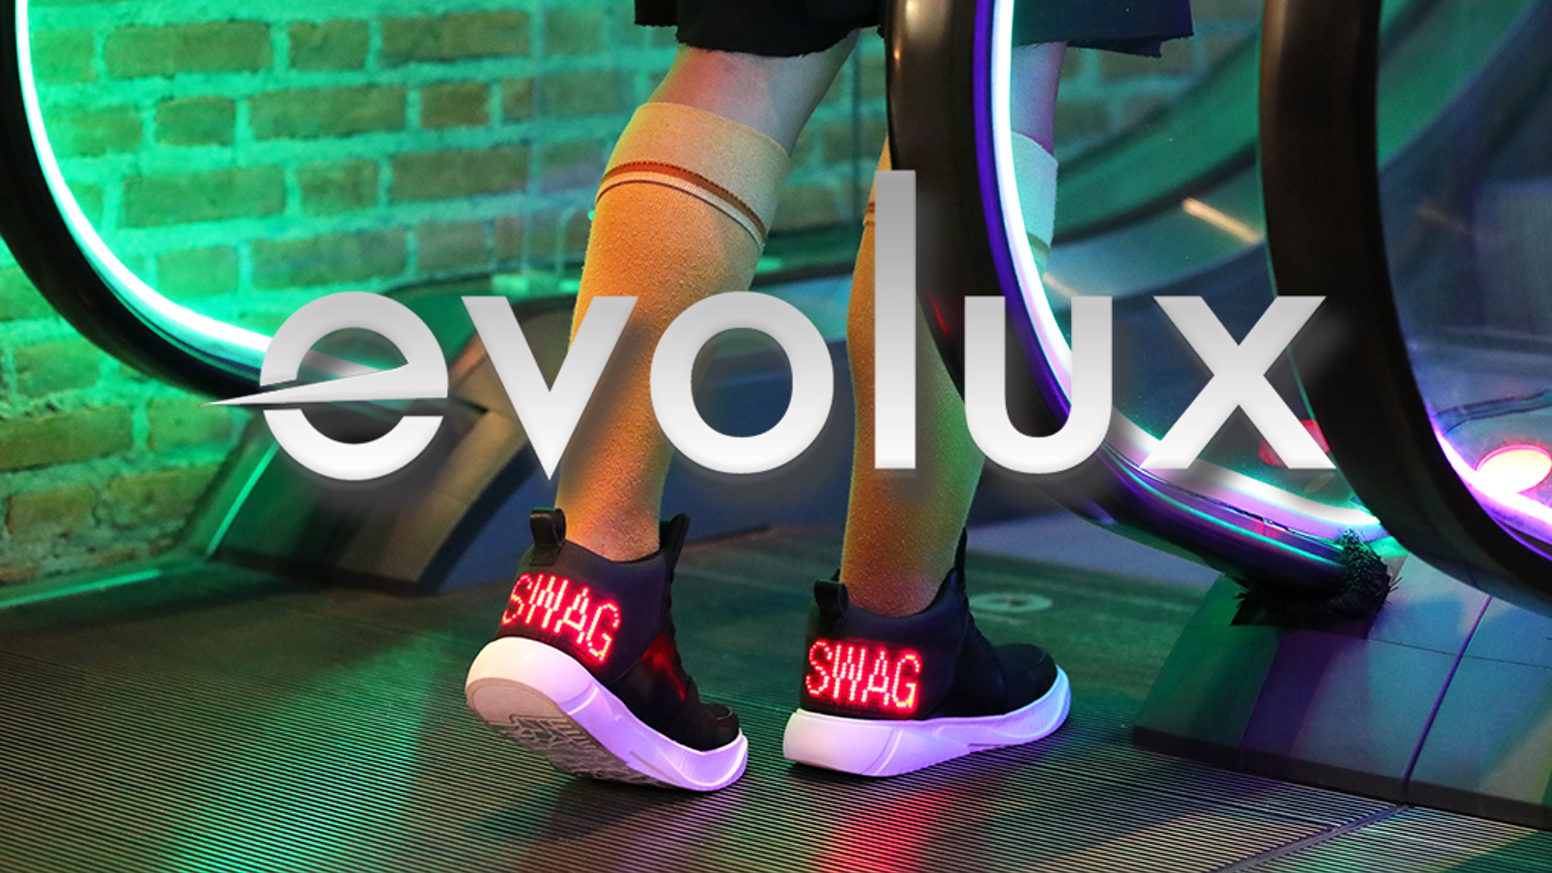 Customize your kicks with an embedded flexible LED display screen controlled by your smartphone to showcase your unique style.